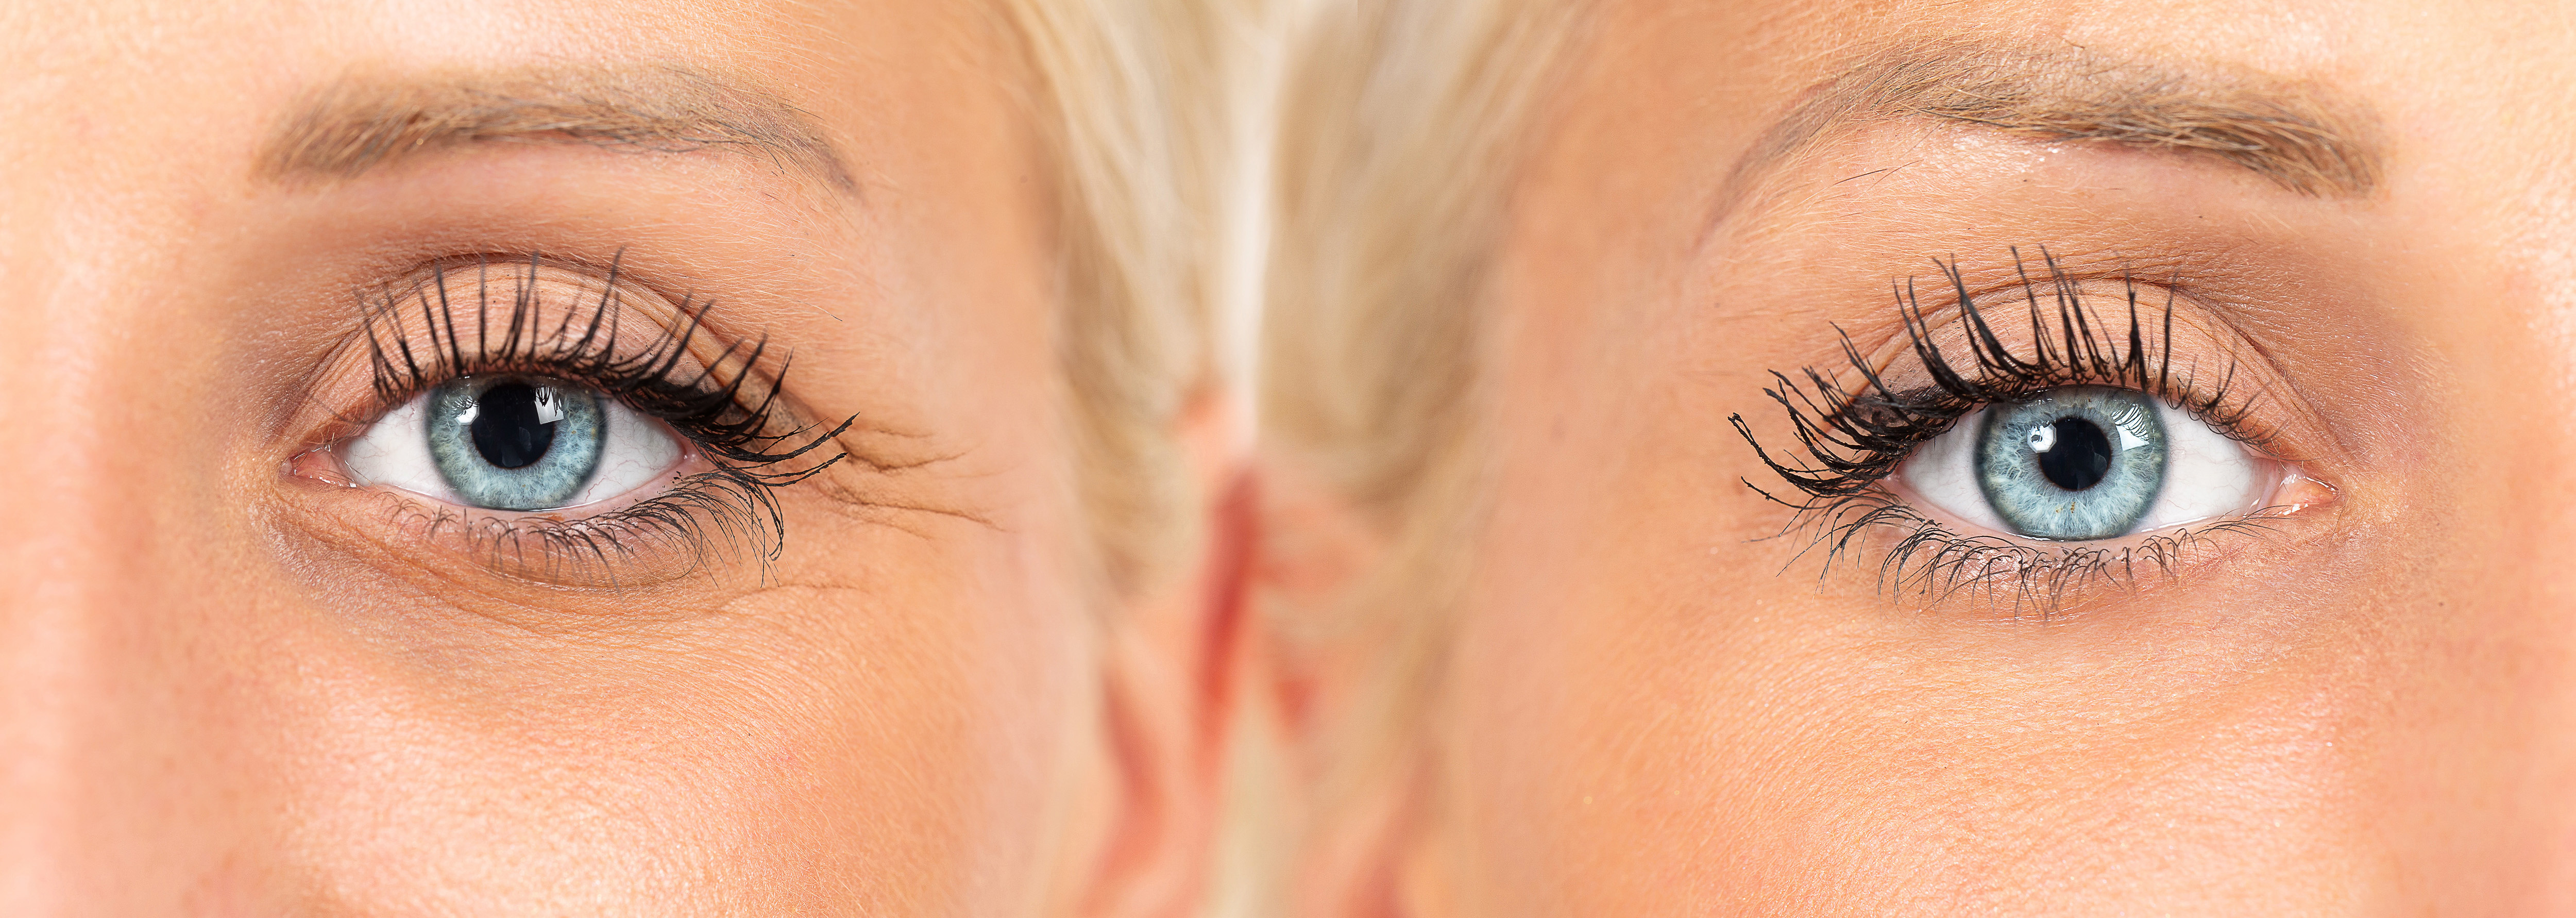 wrinkles cosmetic treatment, images composition showing results before and after crow's feet removal